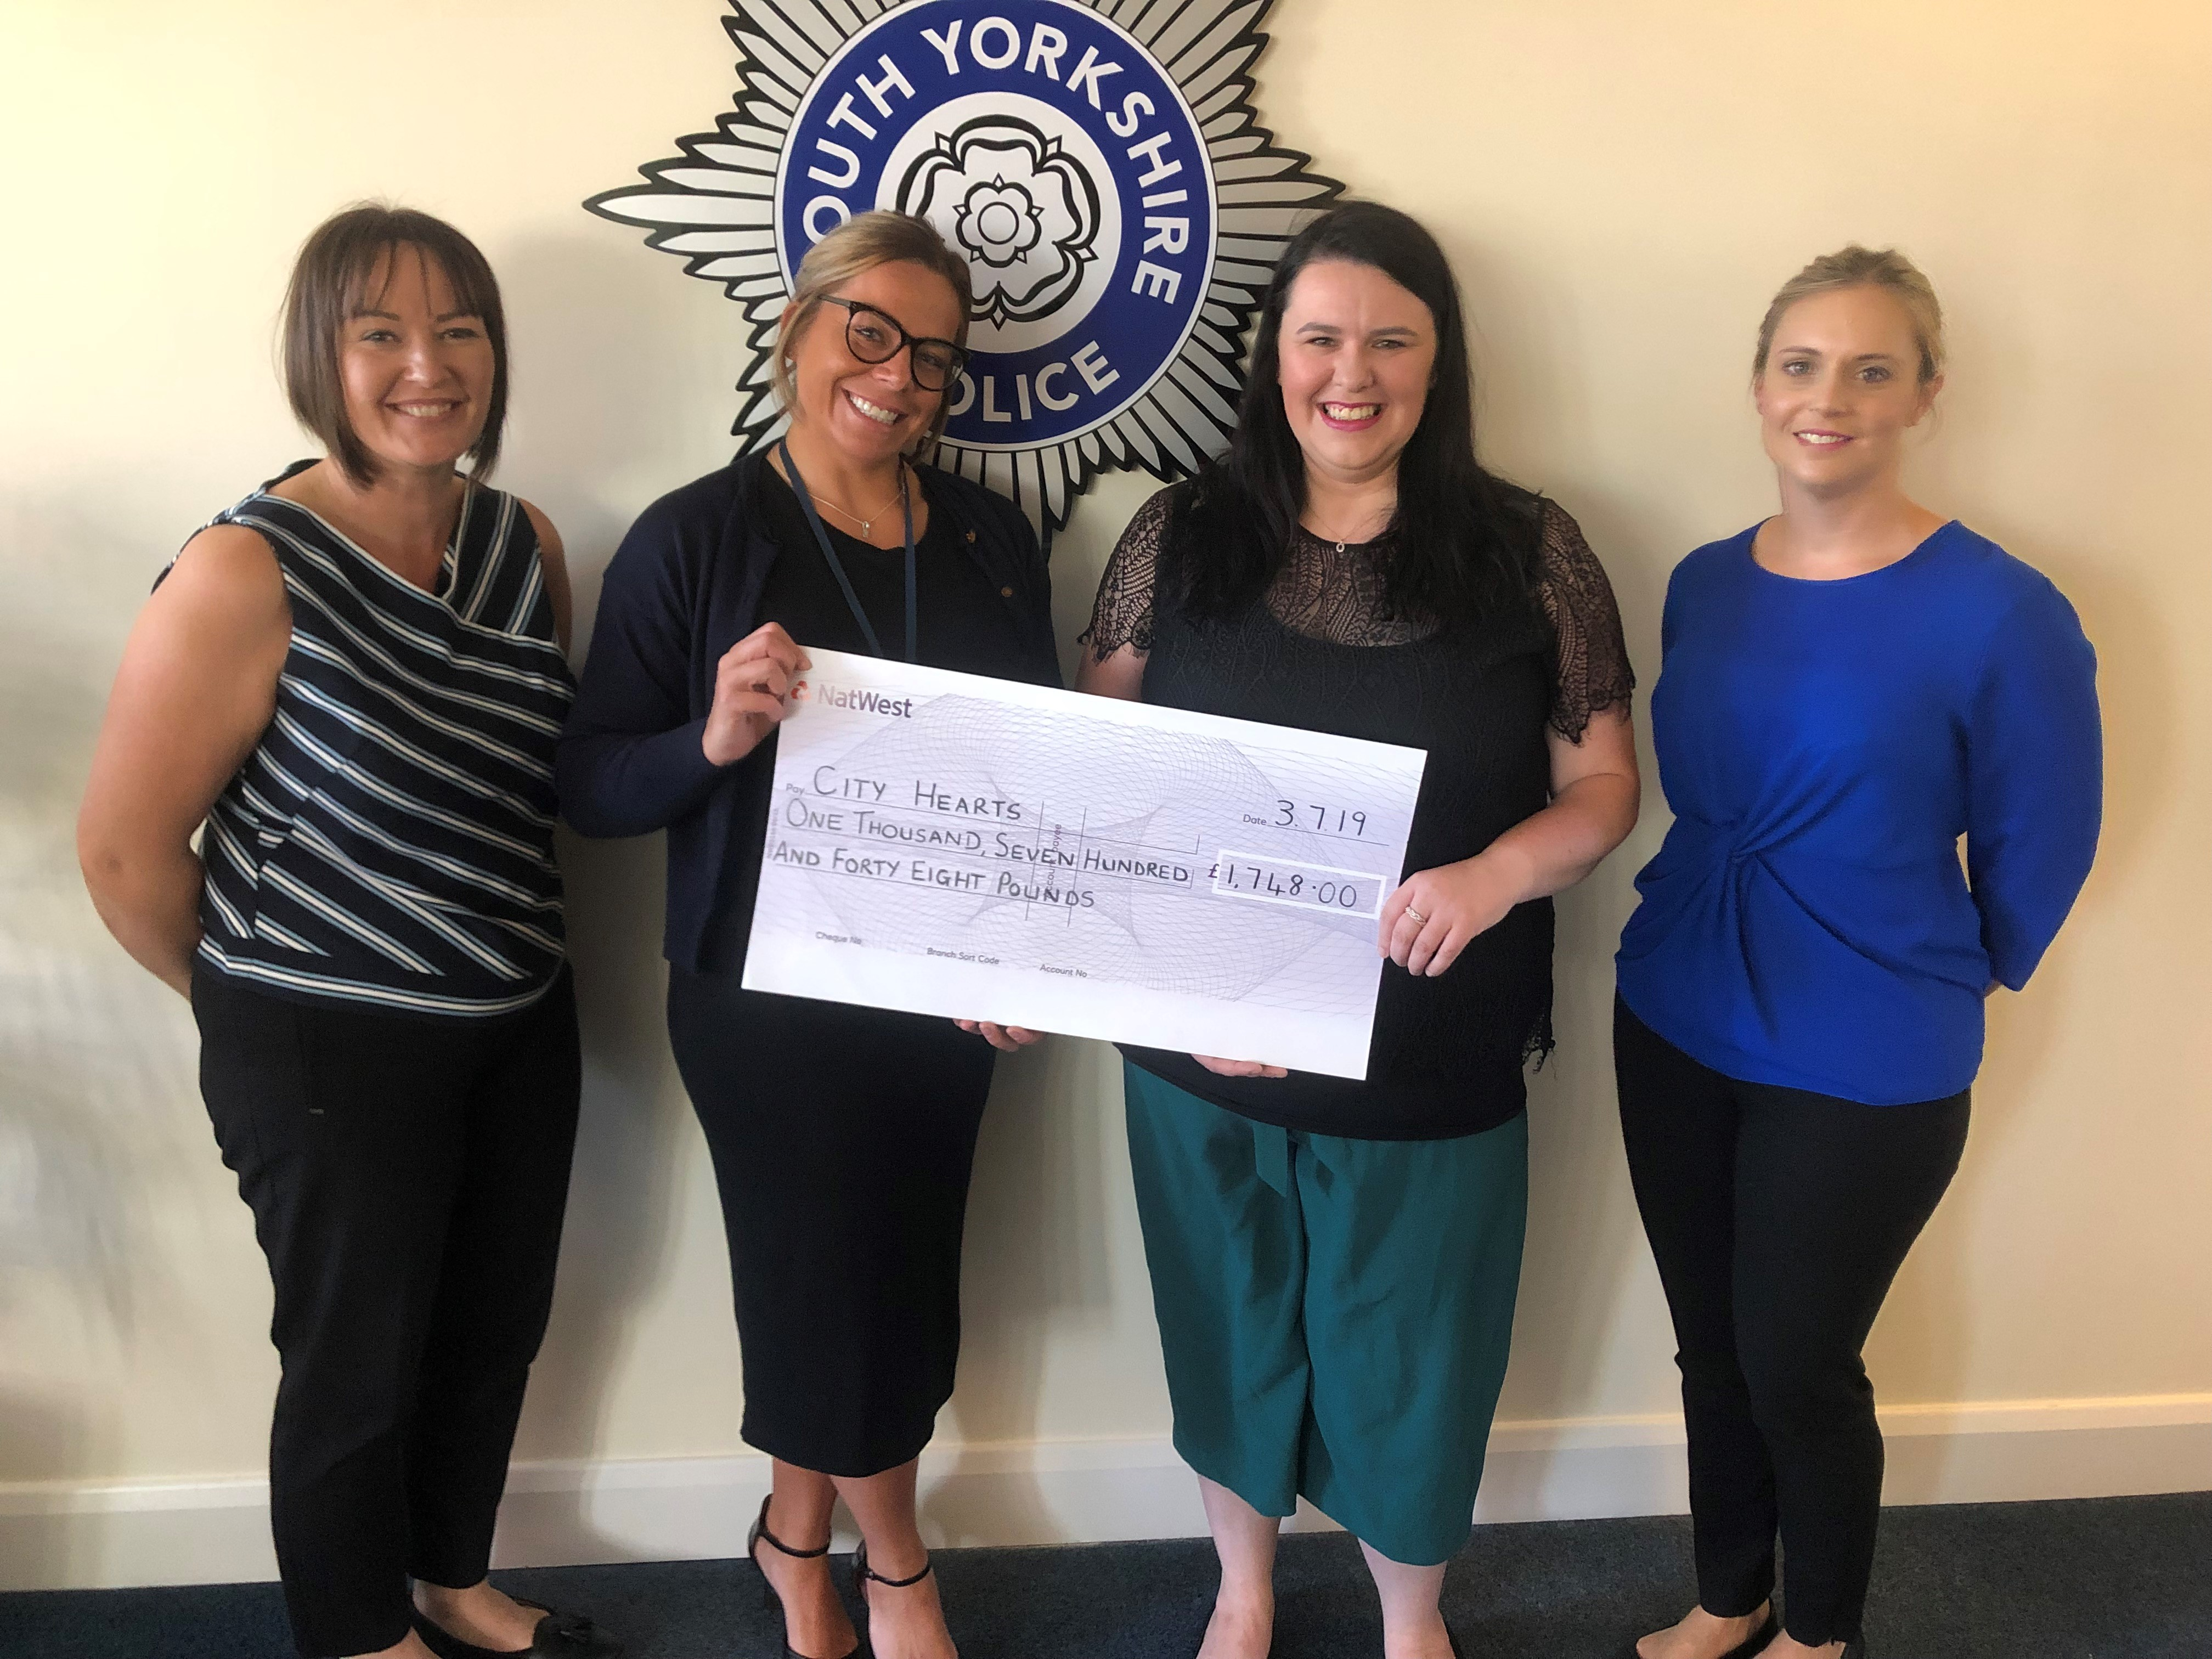 SYP event raises over £1k for trafficking charity - SYP